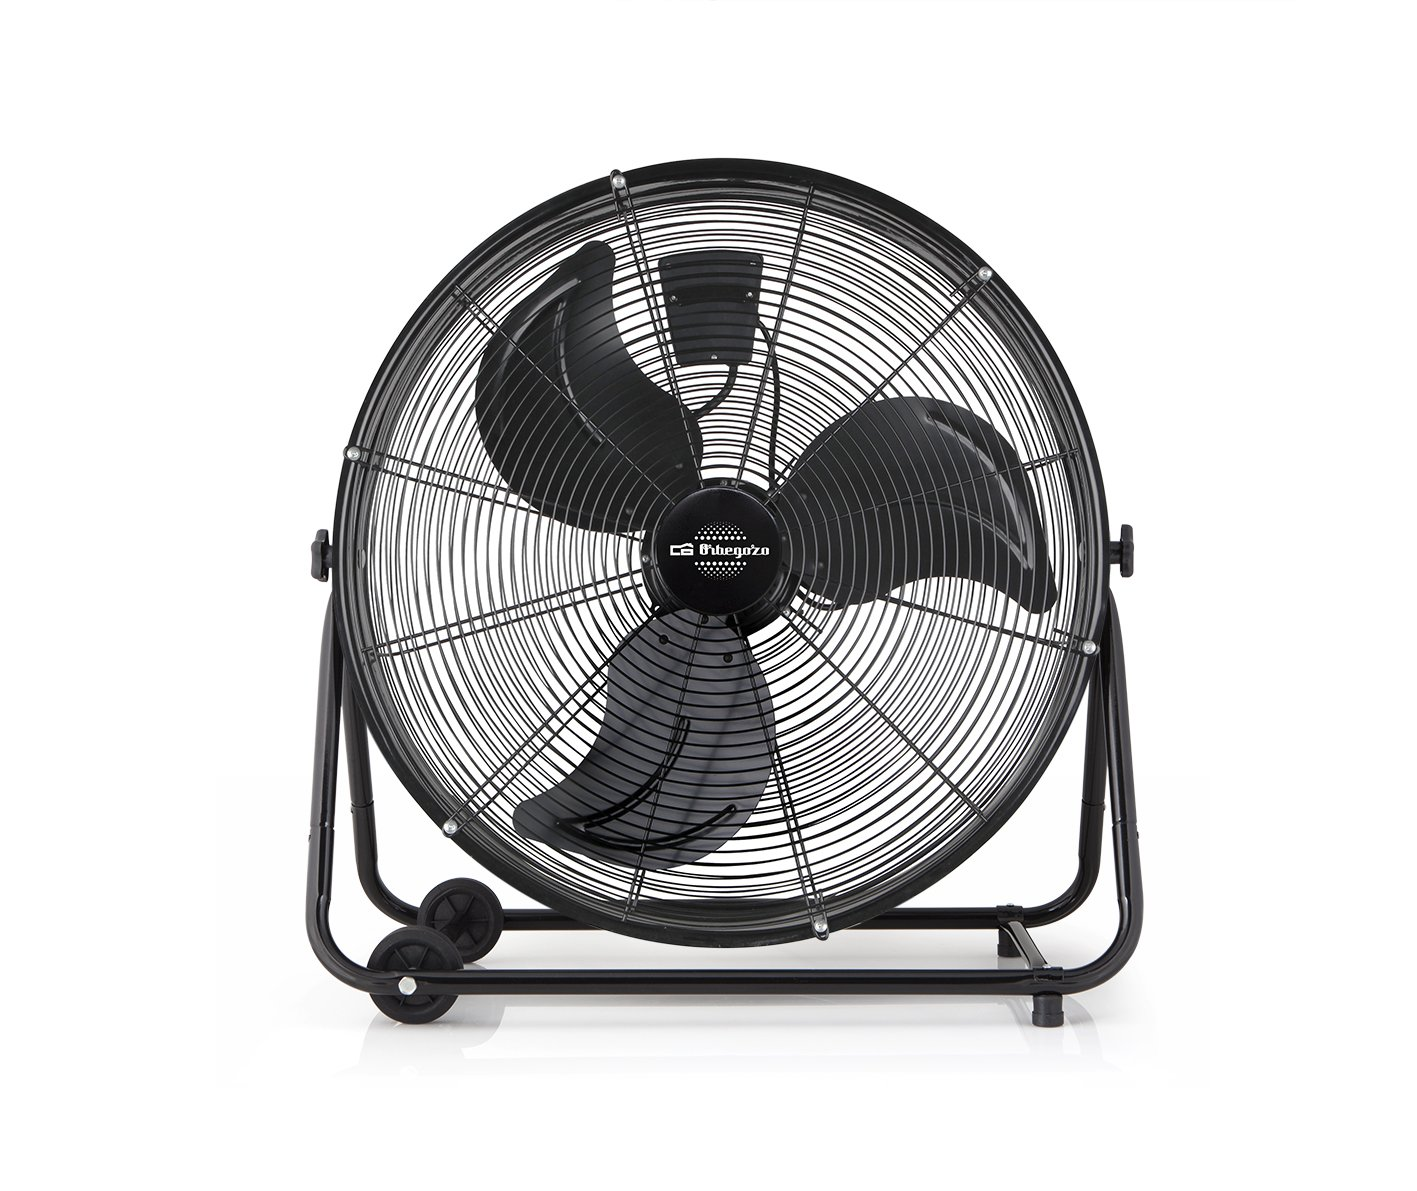 Orbegozo PWT 3061 Power Fan Profesional - Ventilador industrial ...